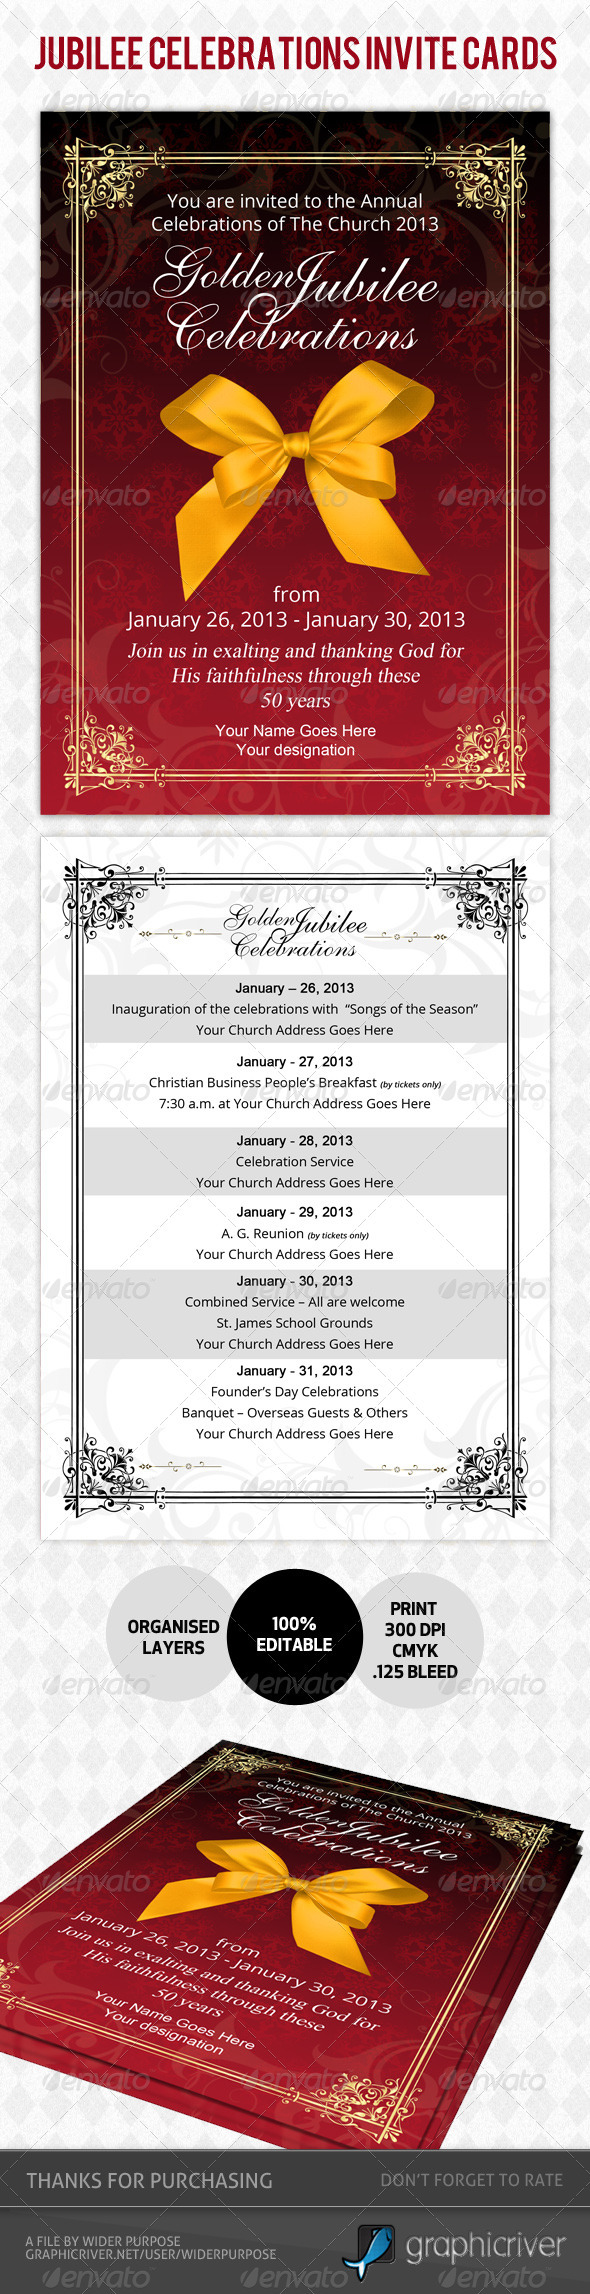 Golden Jubilee Invitation Card Psd Template - Invitations Cards & Invites